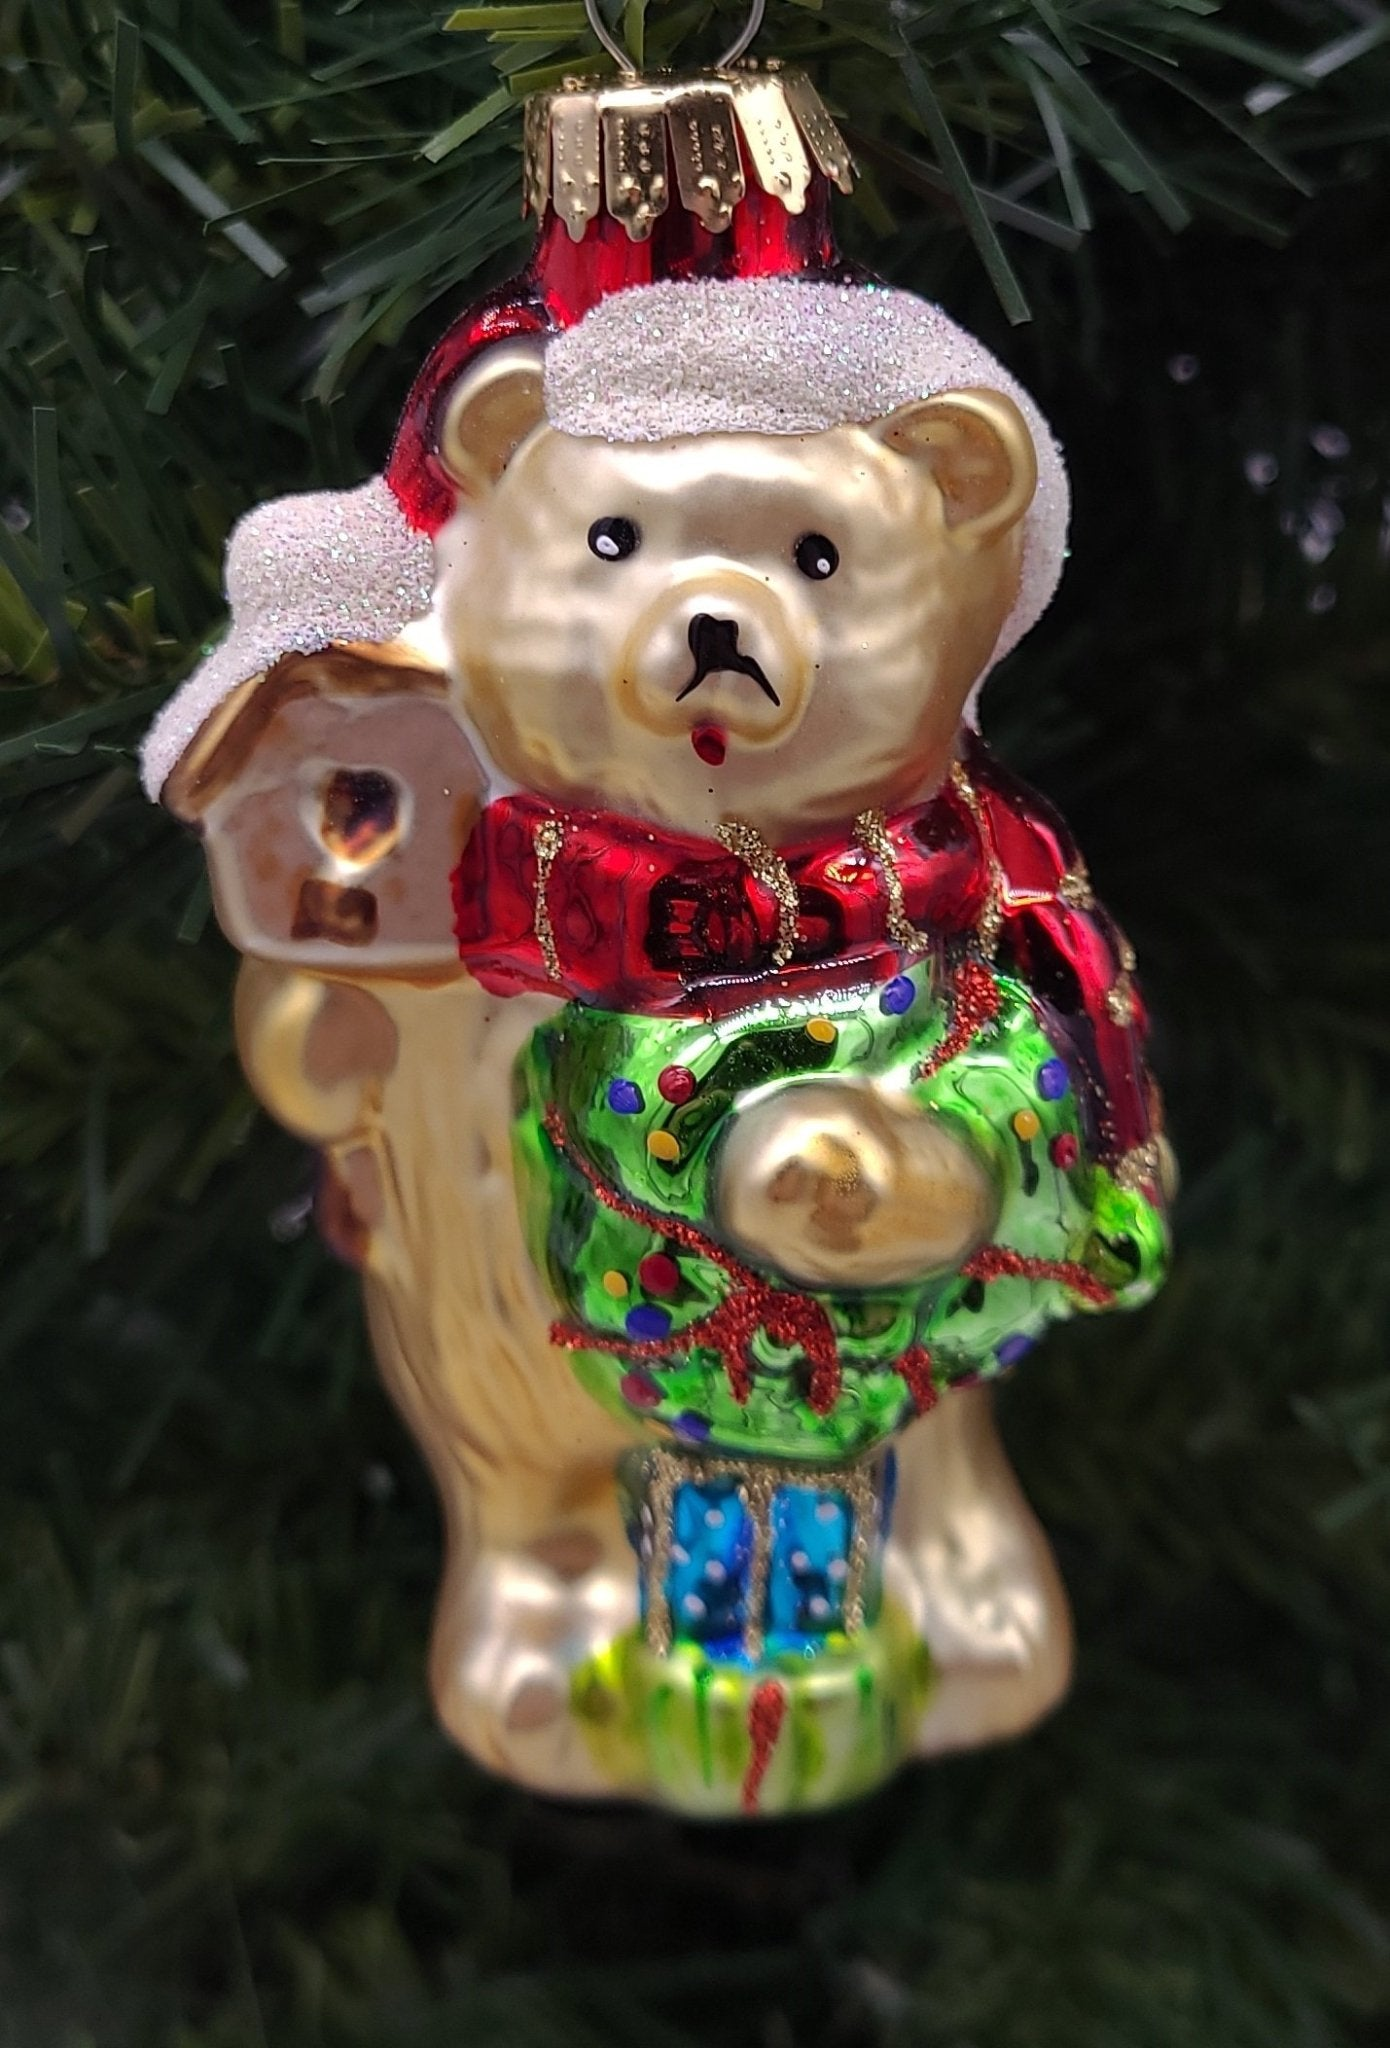 Bear With Wreath and Presents Glass Ornament - Schmidt Christmas Market Dekorasyon ng Pasko